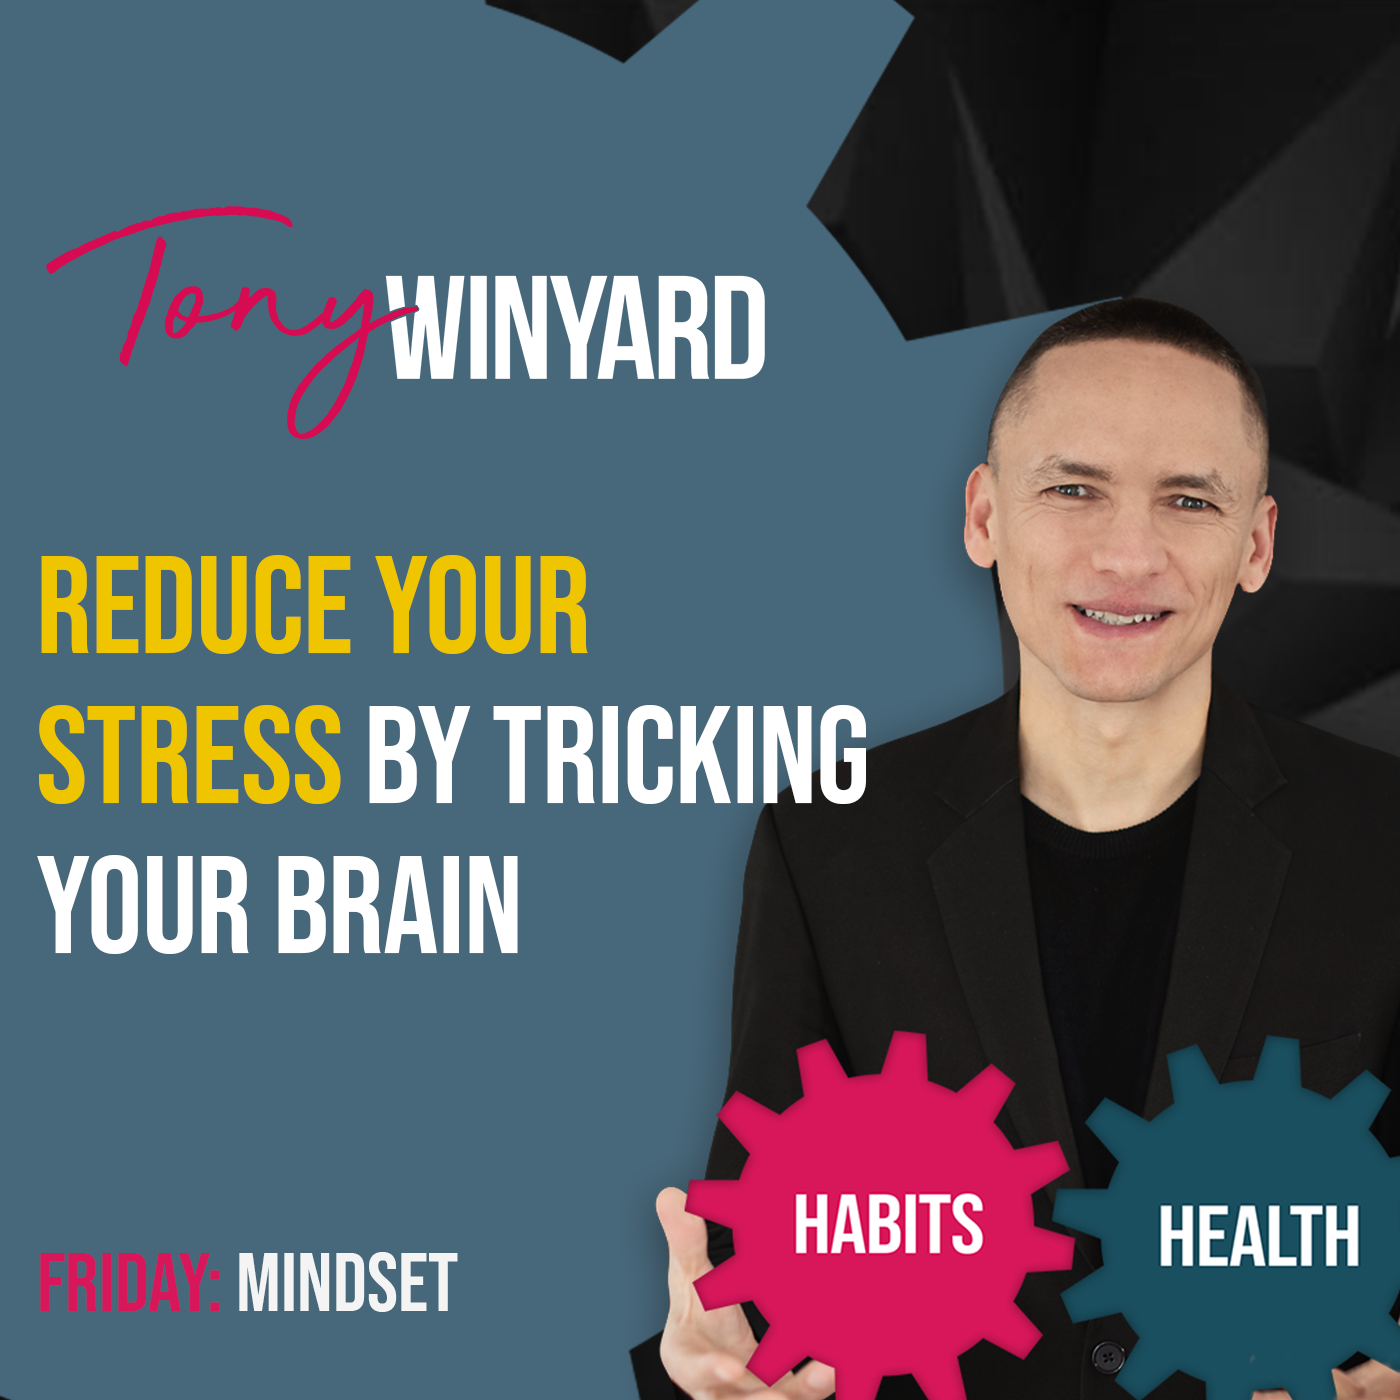 Reduce your stress by tricking your brain